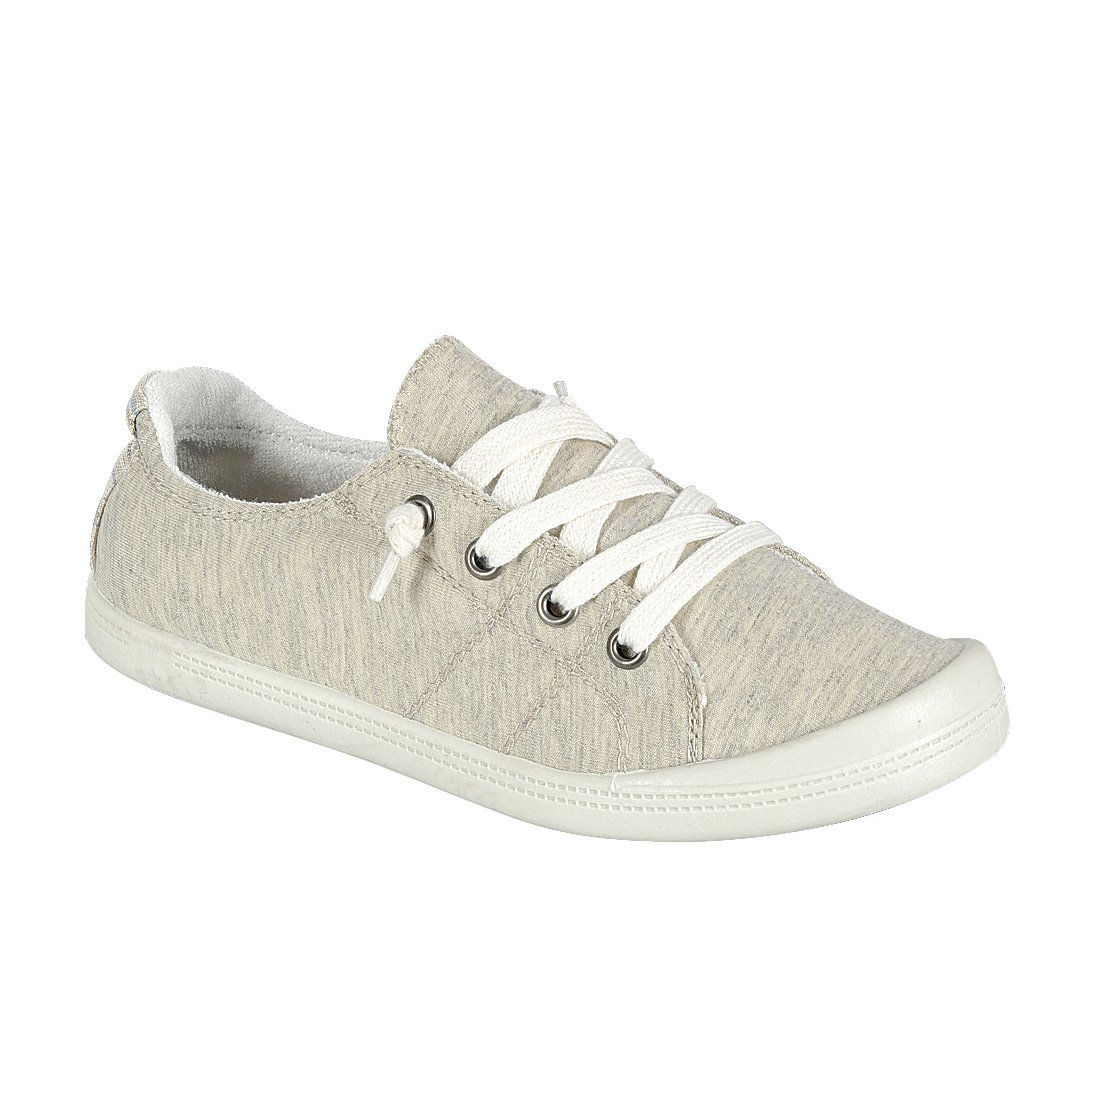 Forever FQ76 Women's Lace up White Sole Casual Street Sneakers B07BF6L6X9 6 B(M) US|Beige